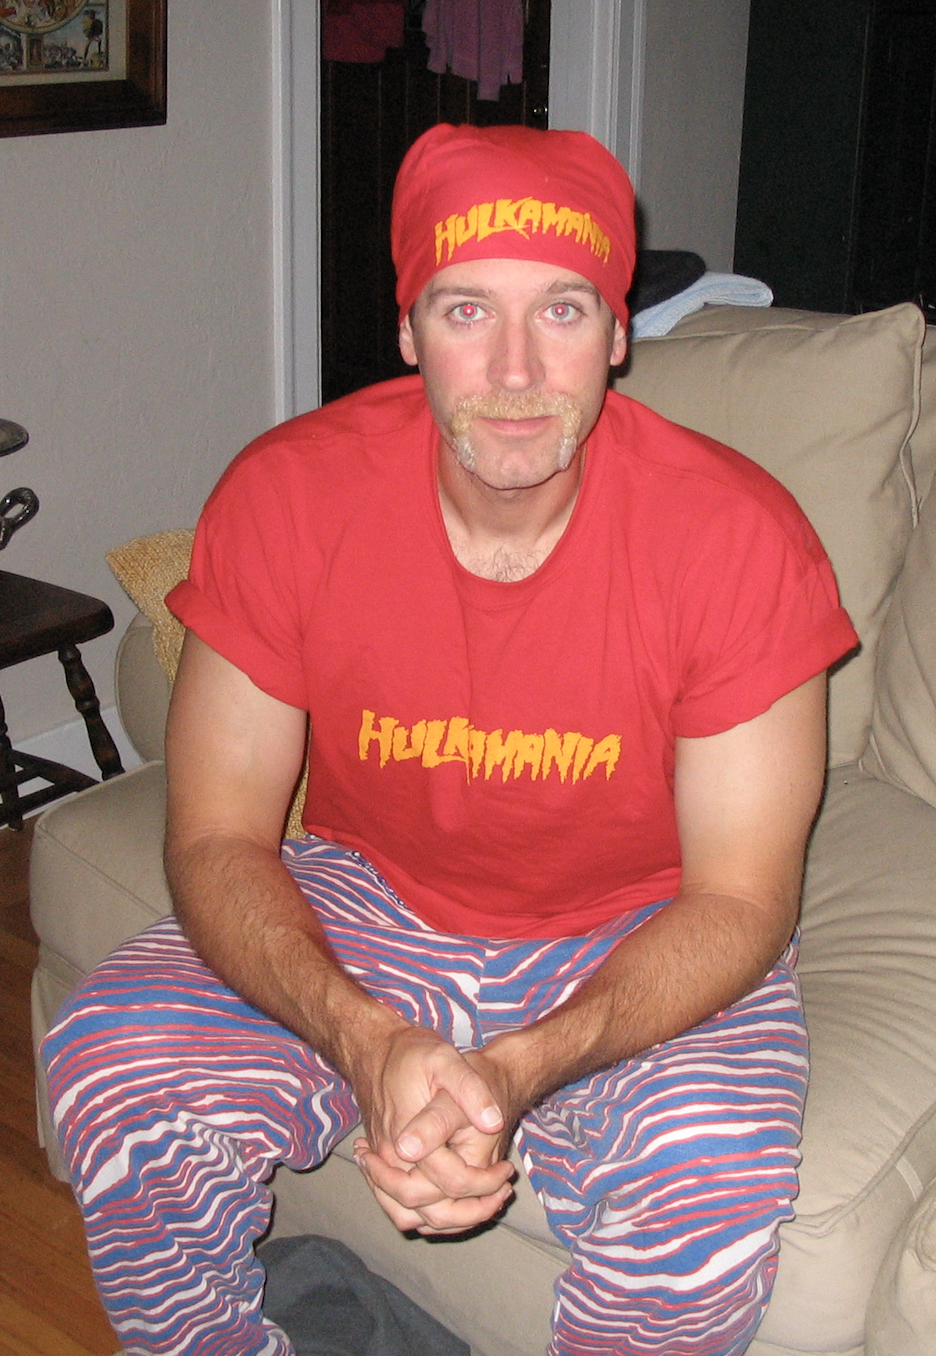 TJ as Hulk Hogan, circa 2005.